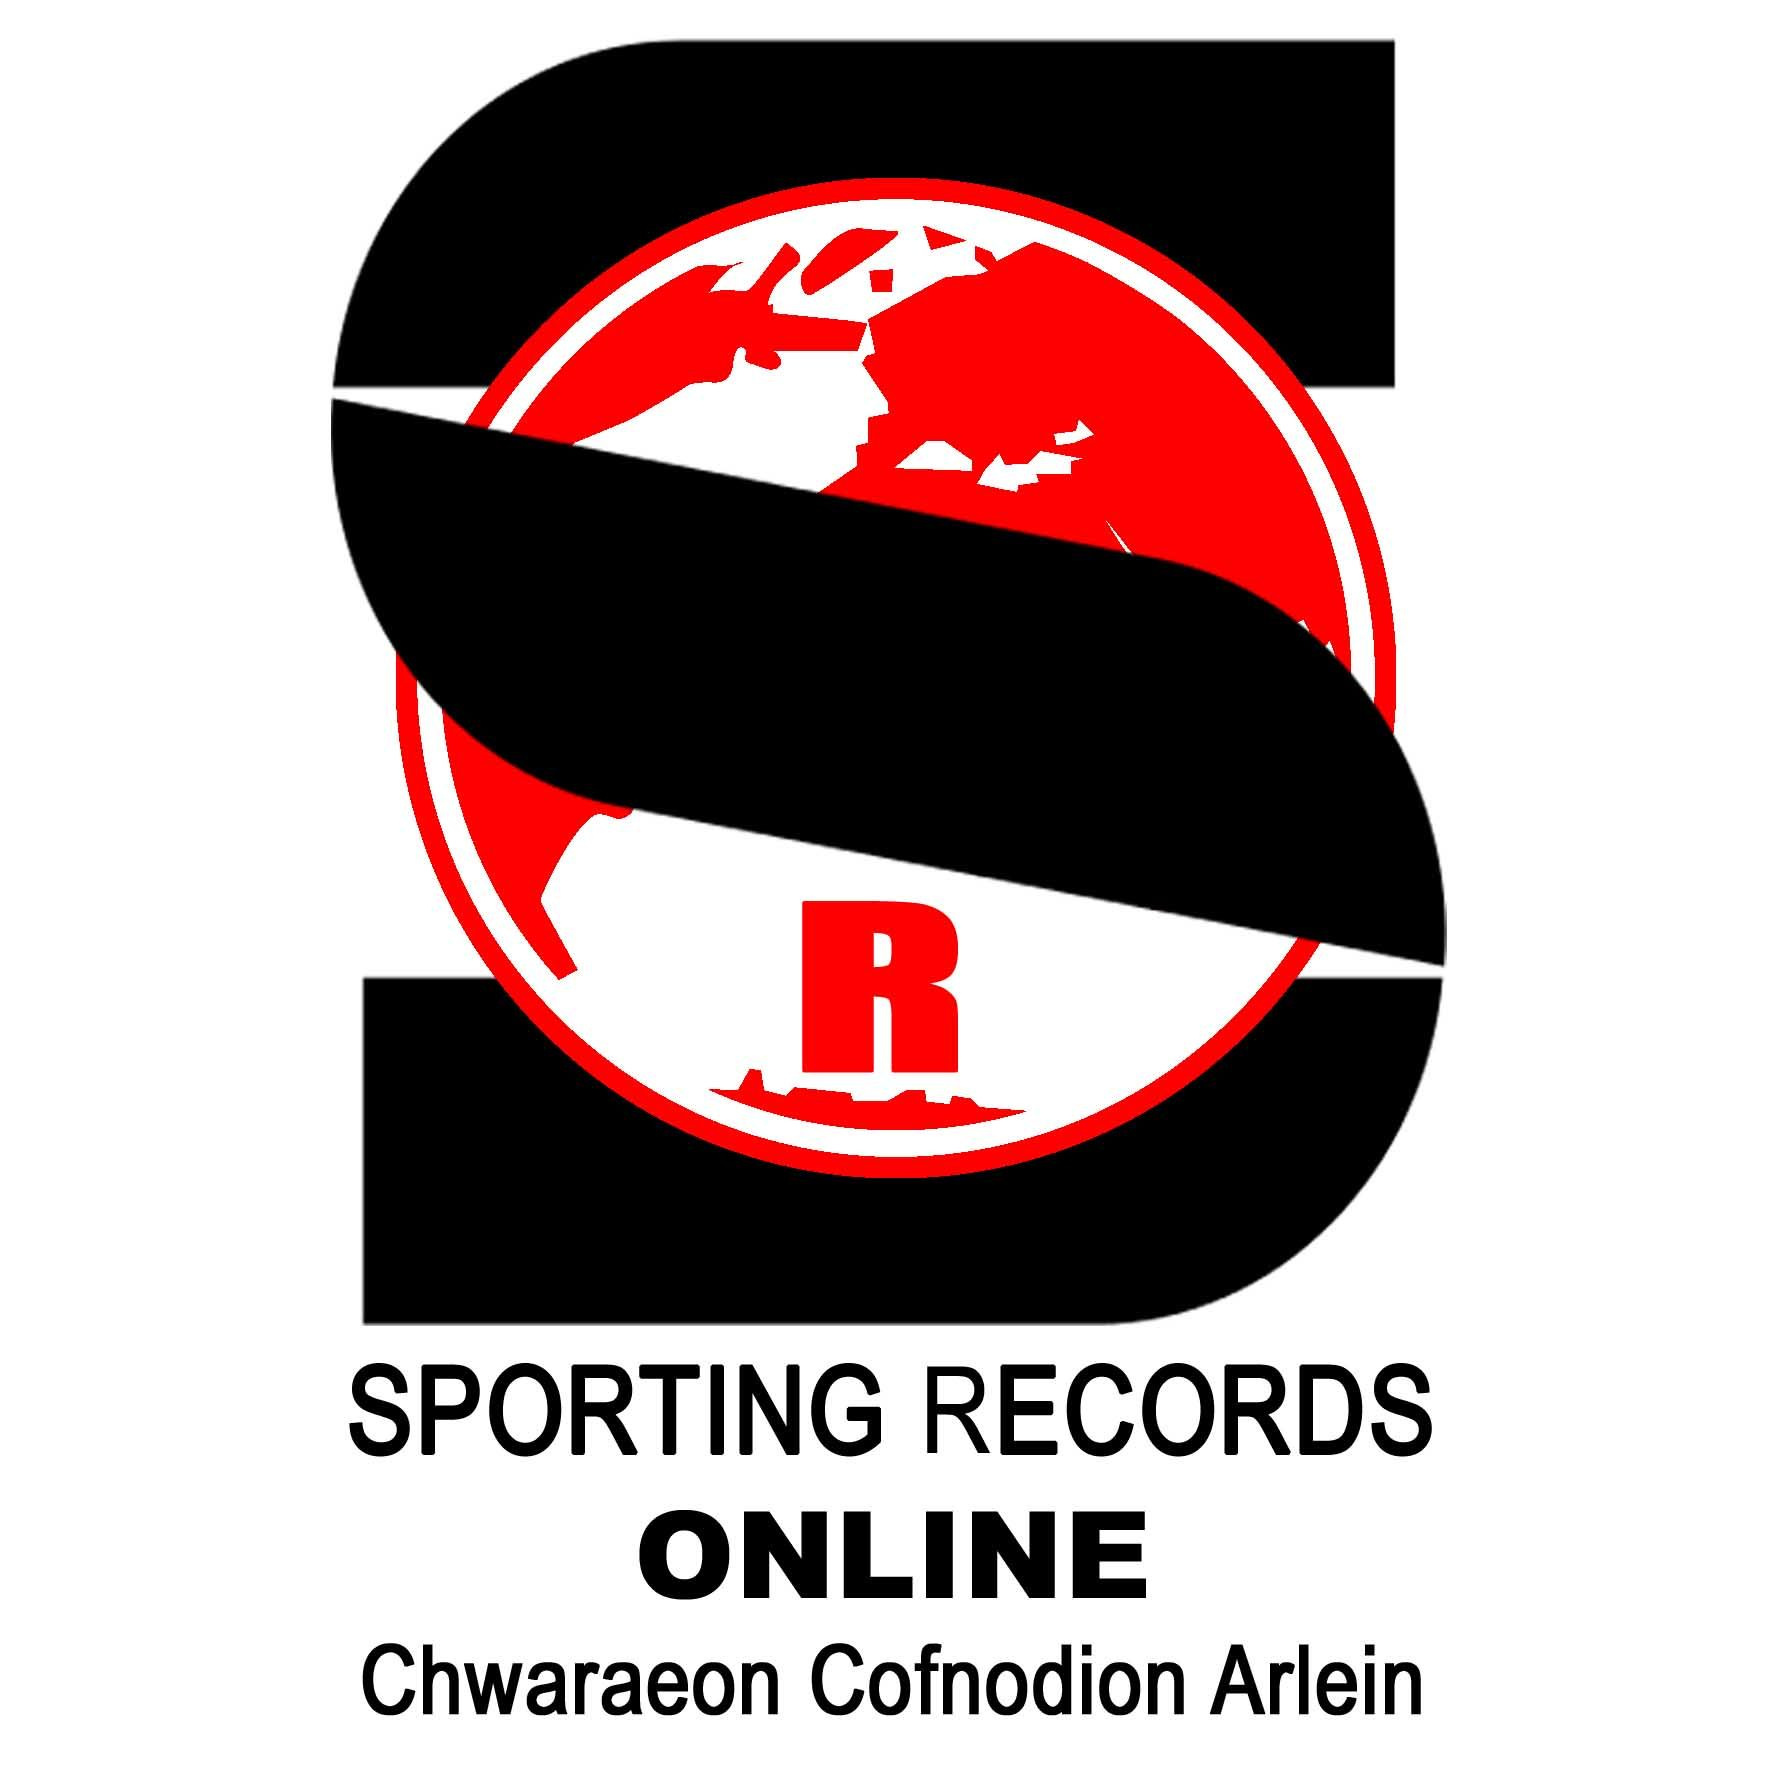 Sporting Records Online Ltd